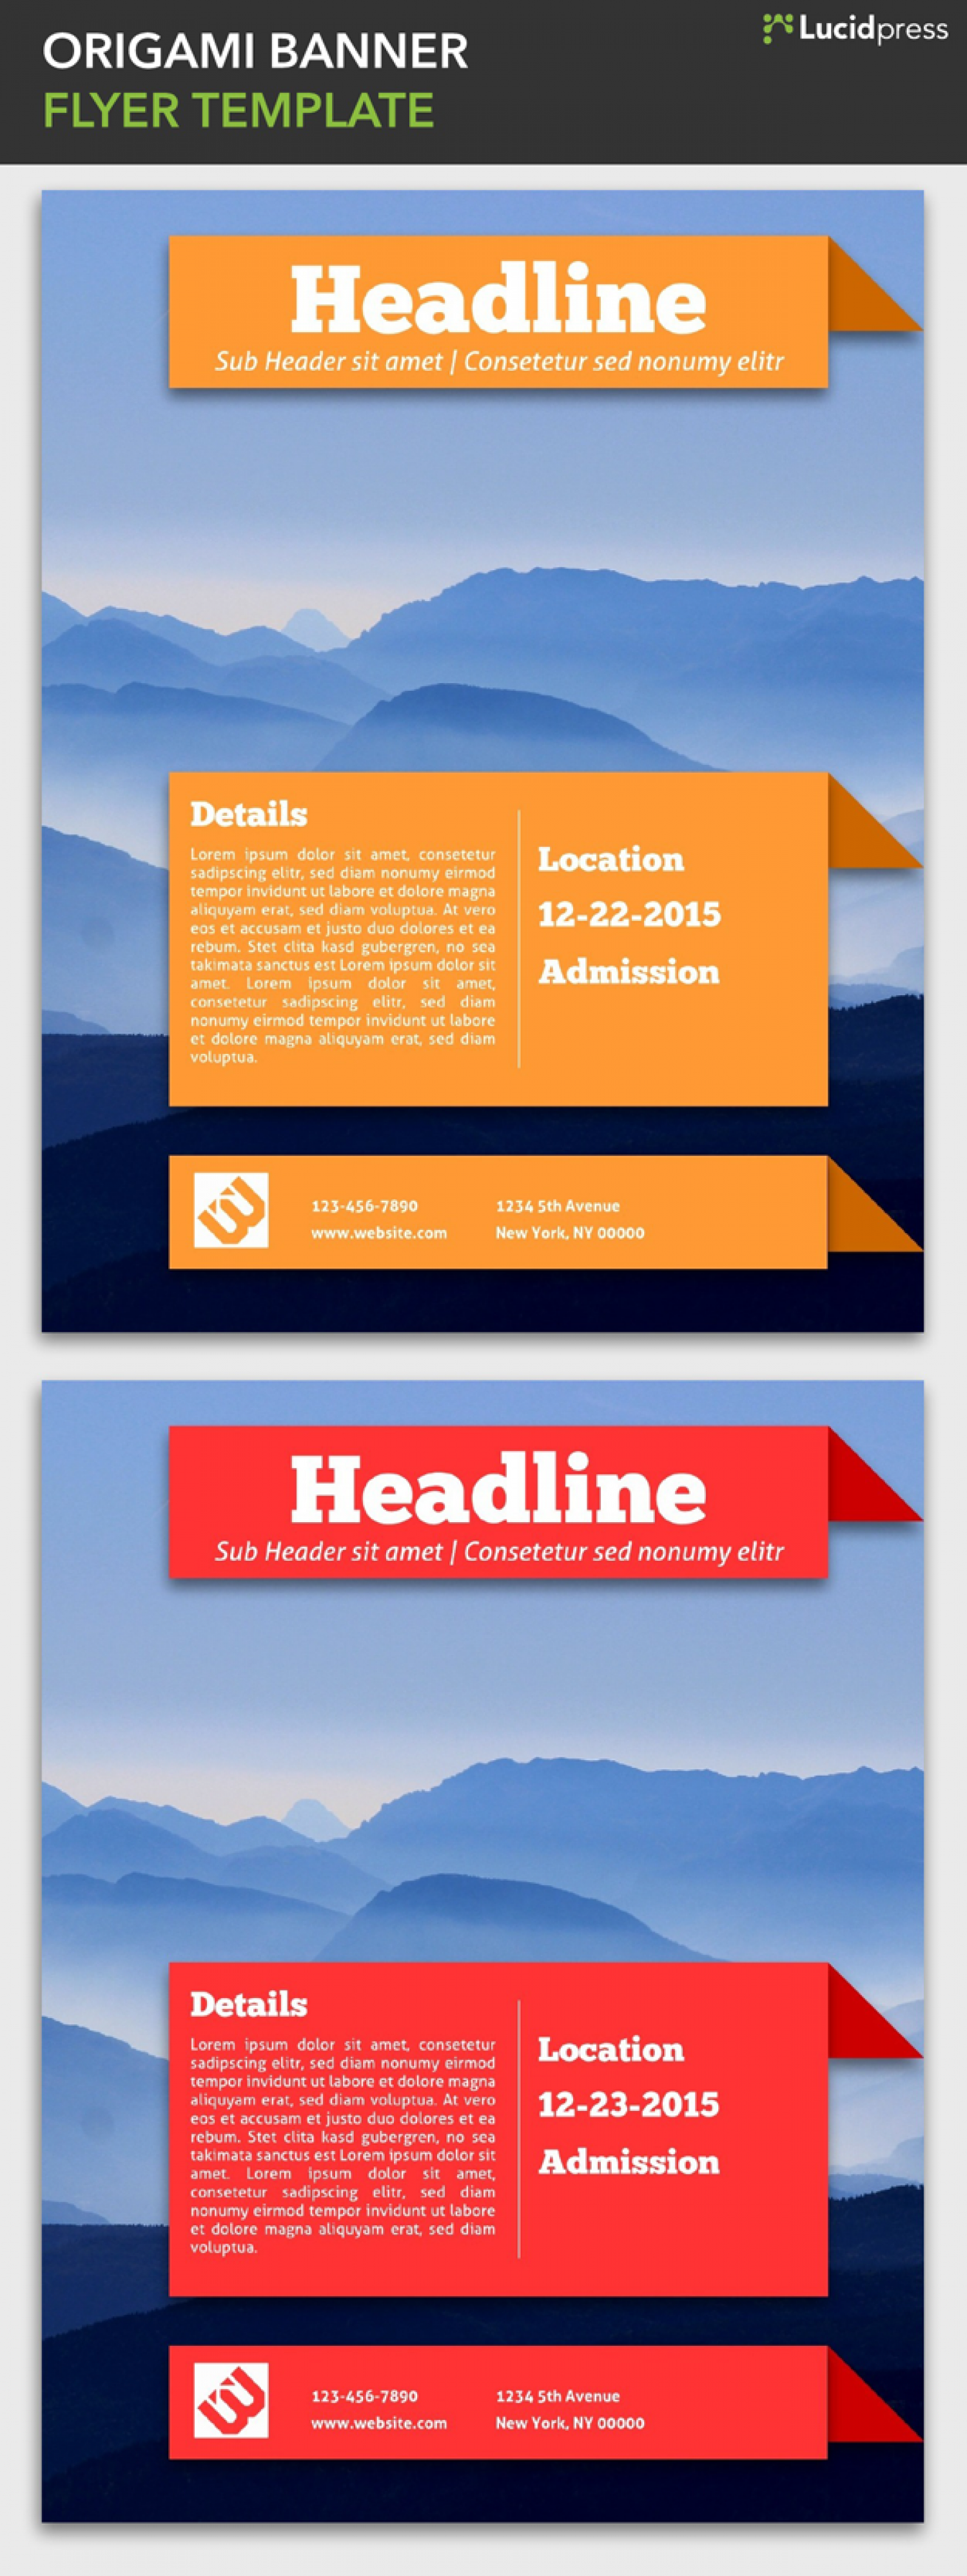 Event Flyer Templates | Lucidpress Infographic